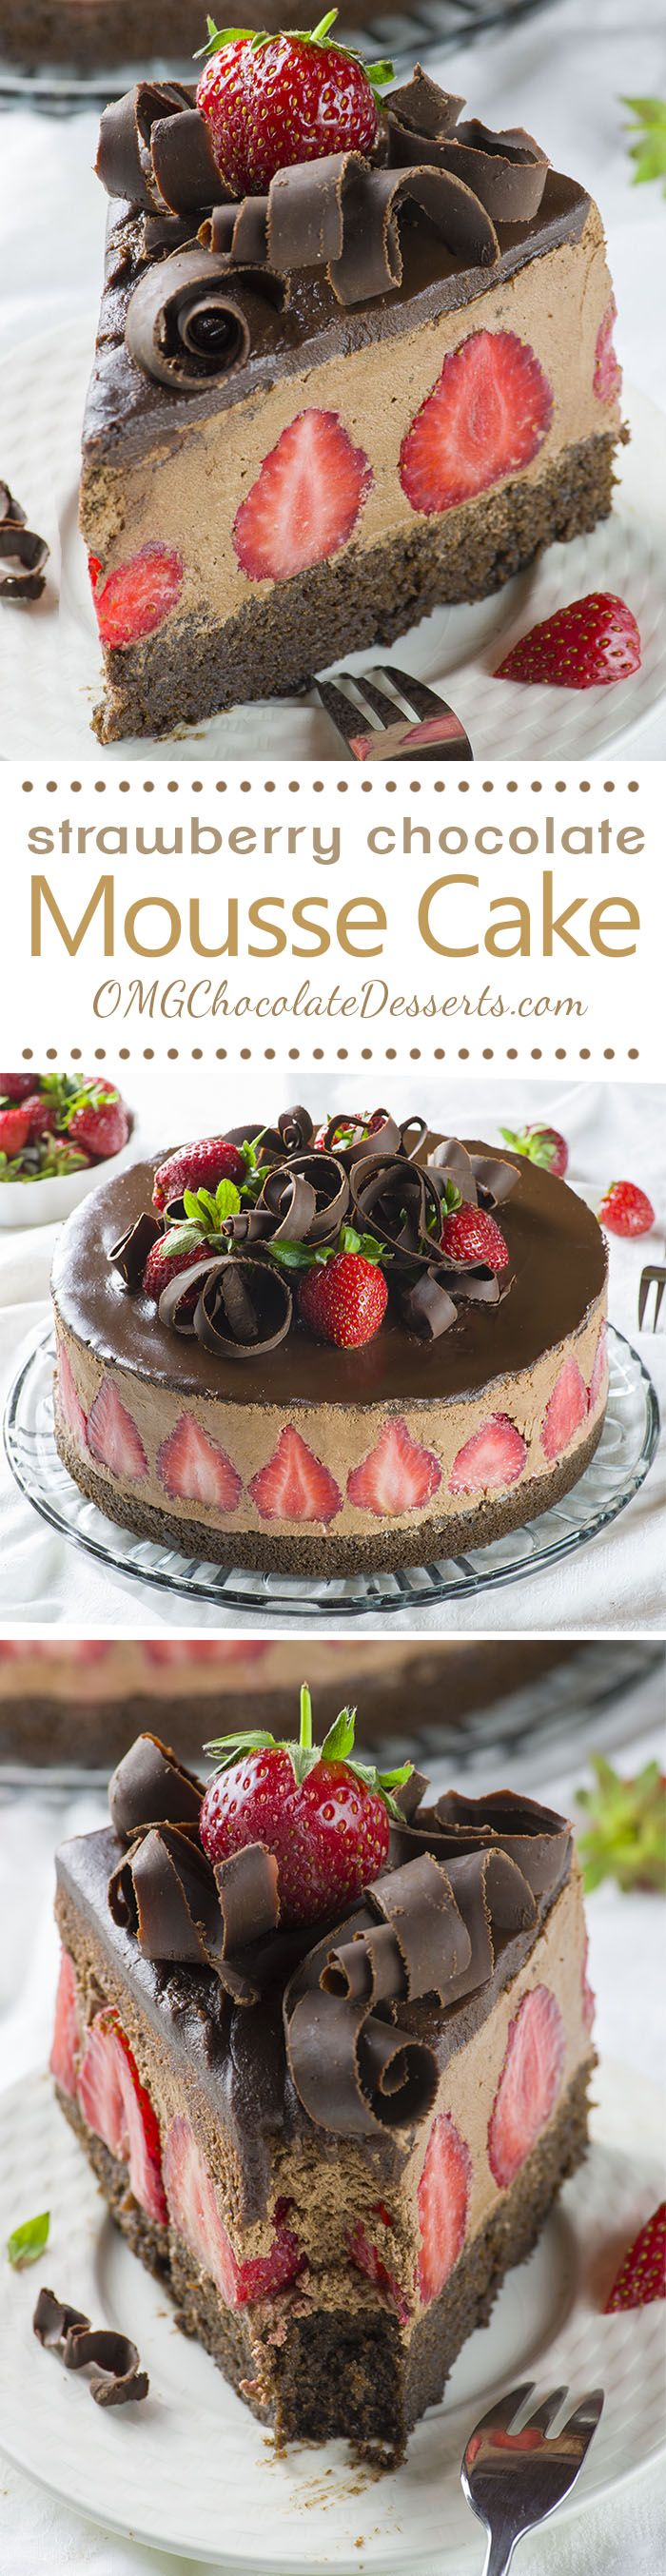 Strawberry Chocolate Cake. con base de torta de chocolate, rellena con mouse con frutillas en su interior. ierta con ganache y virutas de chocolate. HACER.